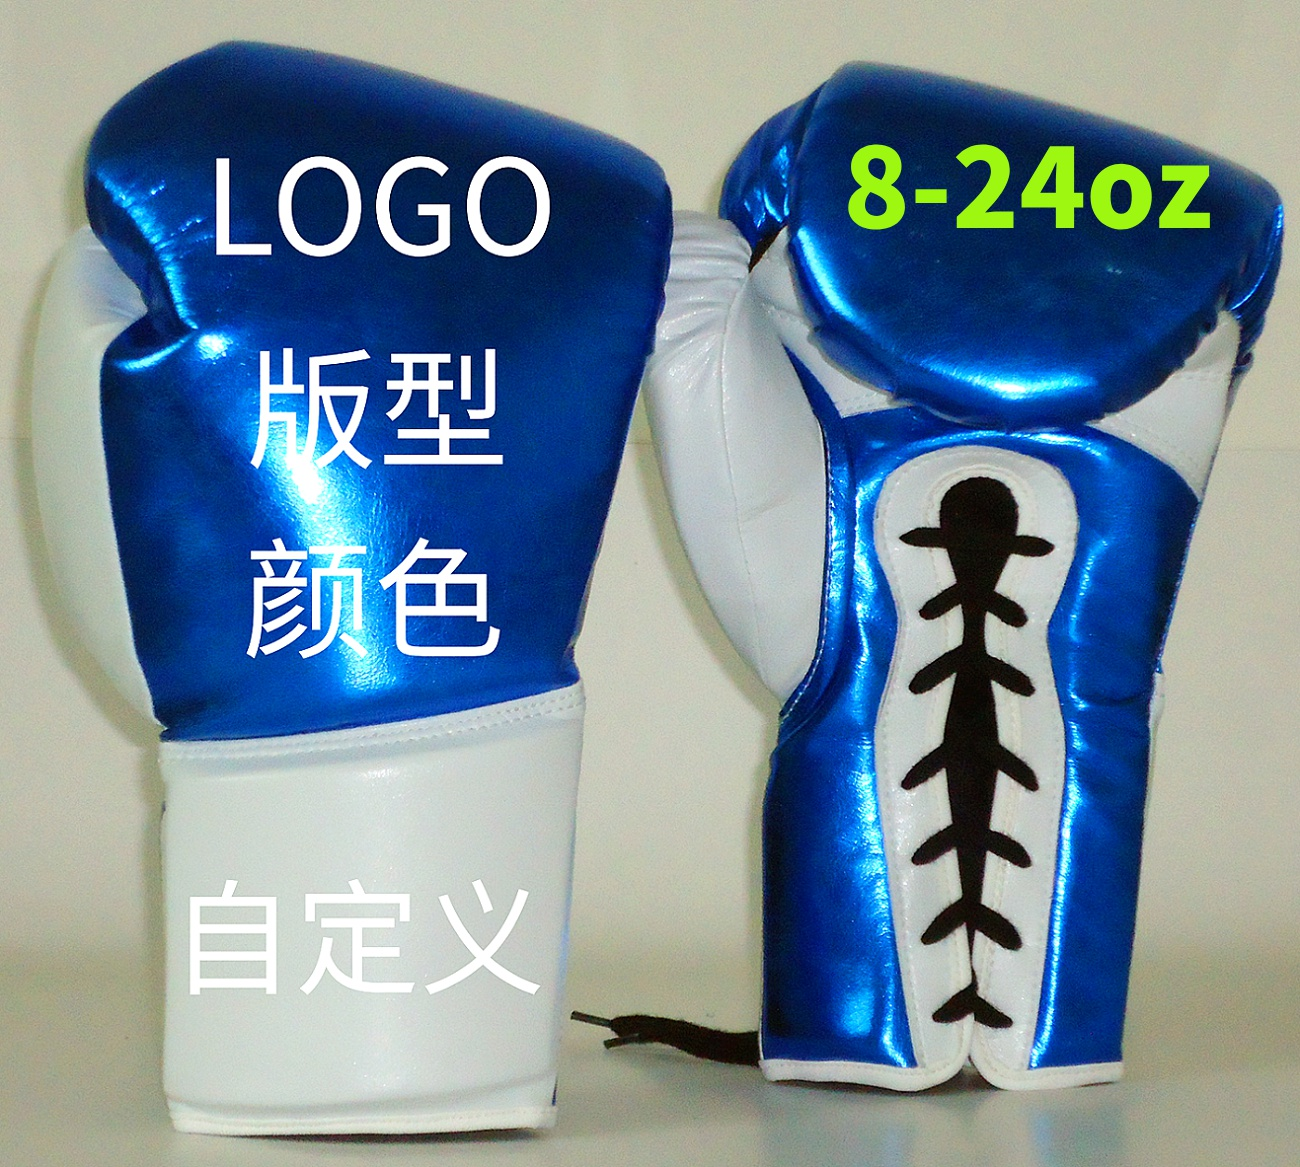 Adult childrens Sanda Thai Boxing male and female combat training sandbag match lace up custom boxing gloves 8-20oz